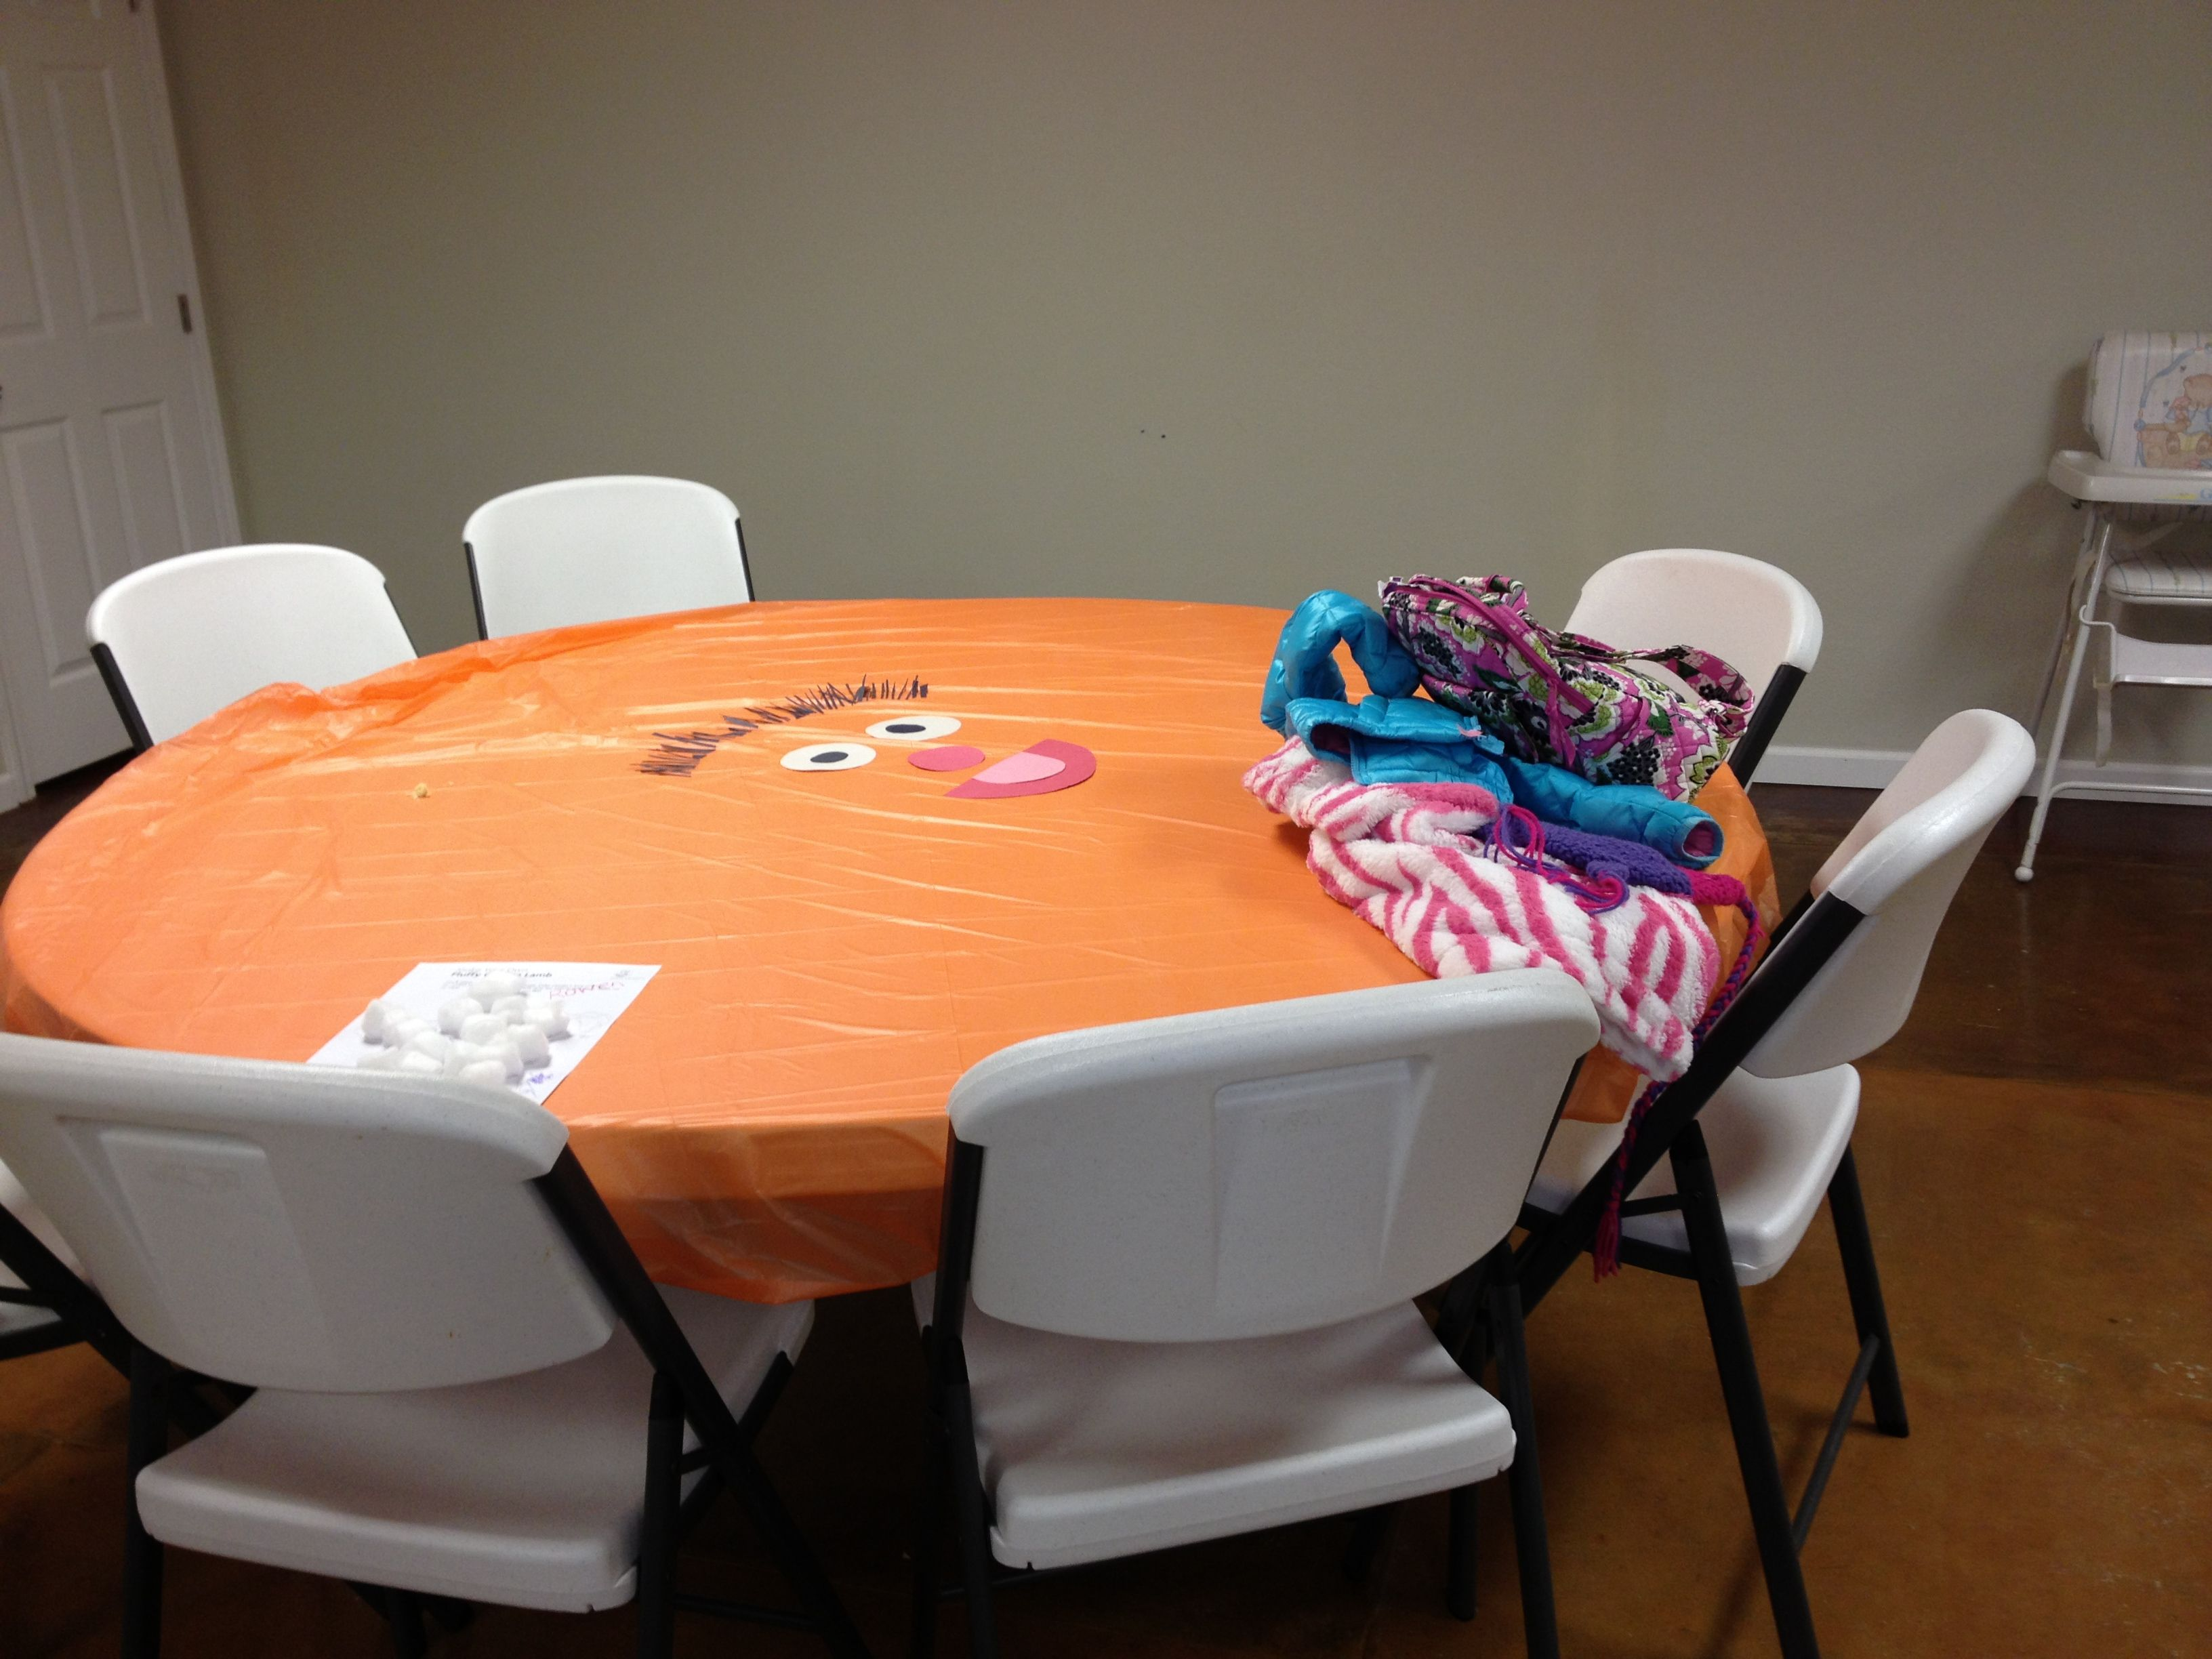 DIY Ernie From Sesame Street Tablecloth. Cut Simple Shapes From  Construction Paper And Tape Or